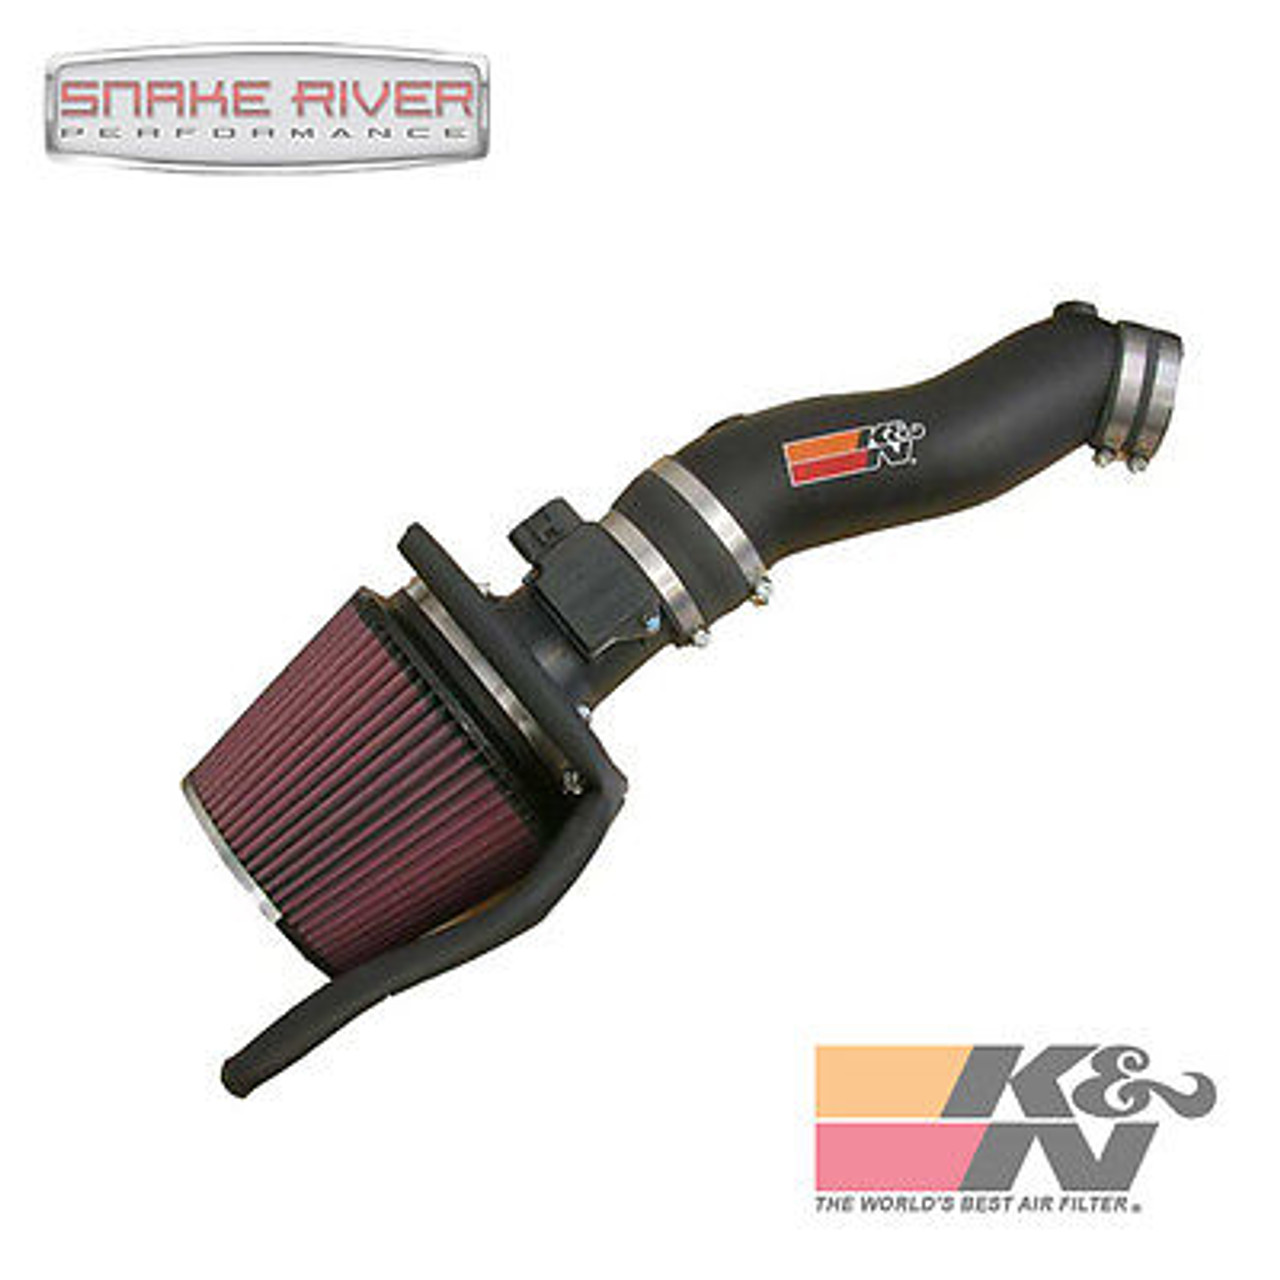 Fits Ford Mustang 1999-2004 4.6L K/&N 57 Series Cold Air Intake System